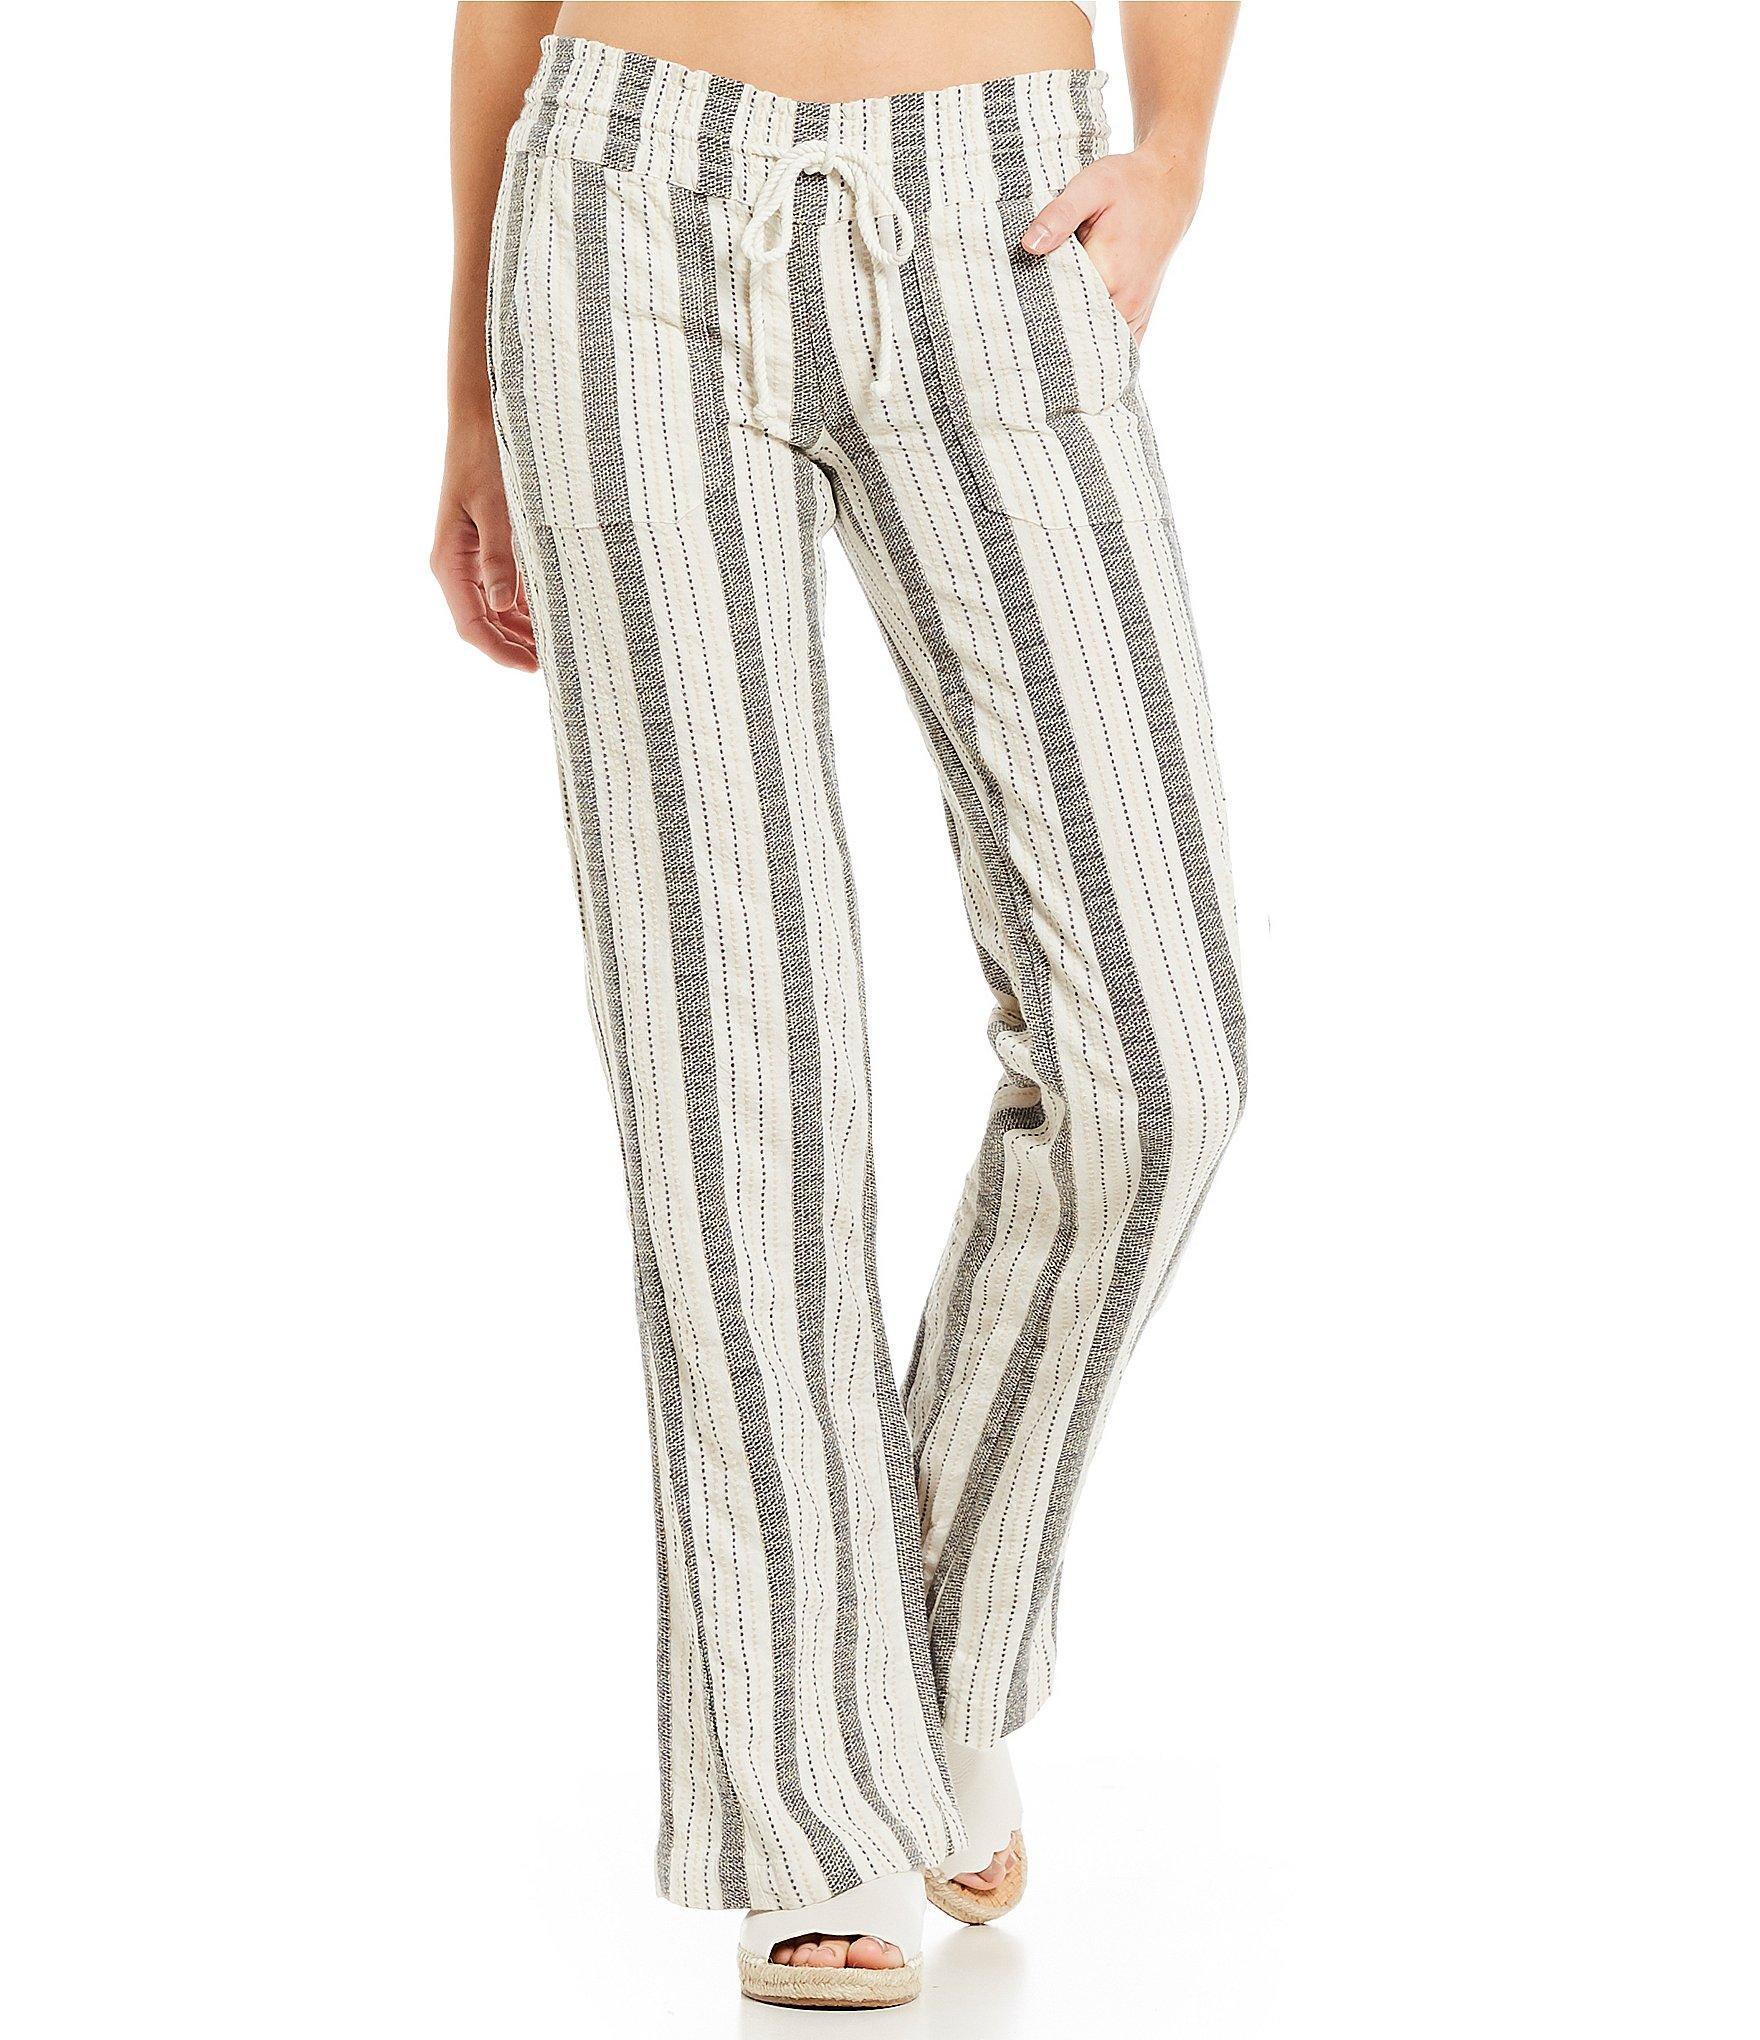 b5b2db1b00 Roxy. Women's Oceanside Stripe Beach Pants